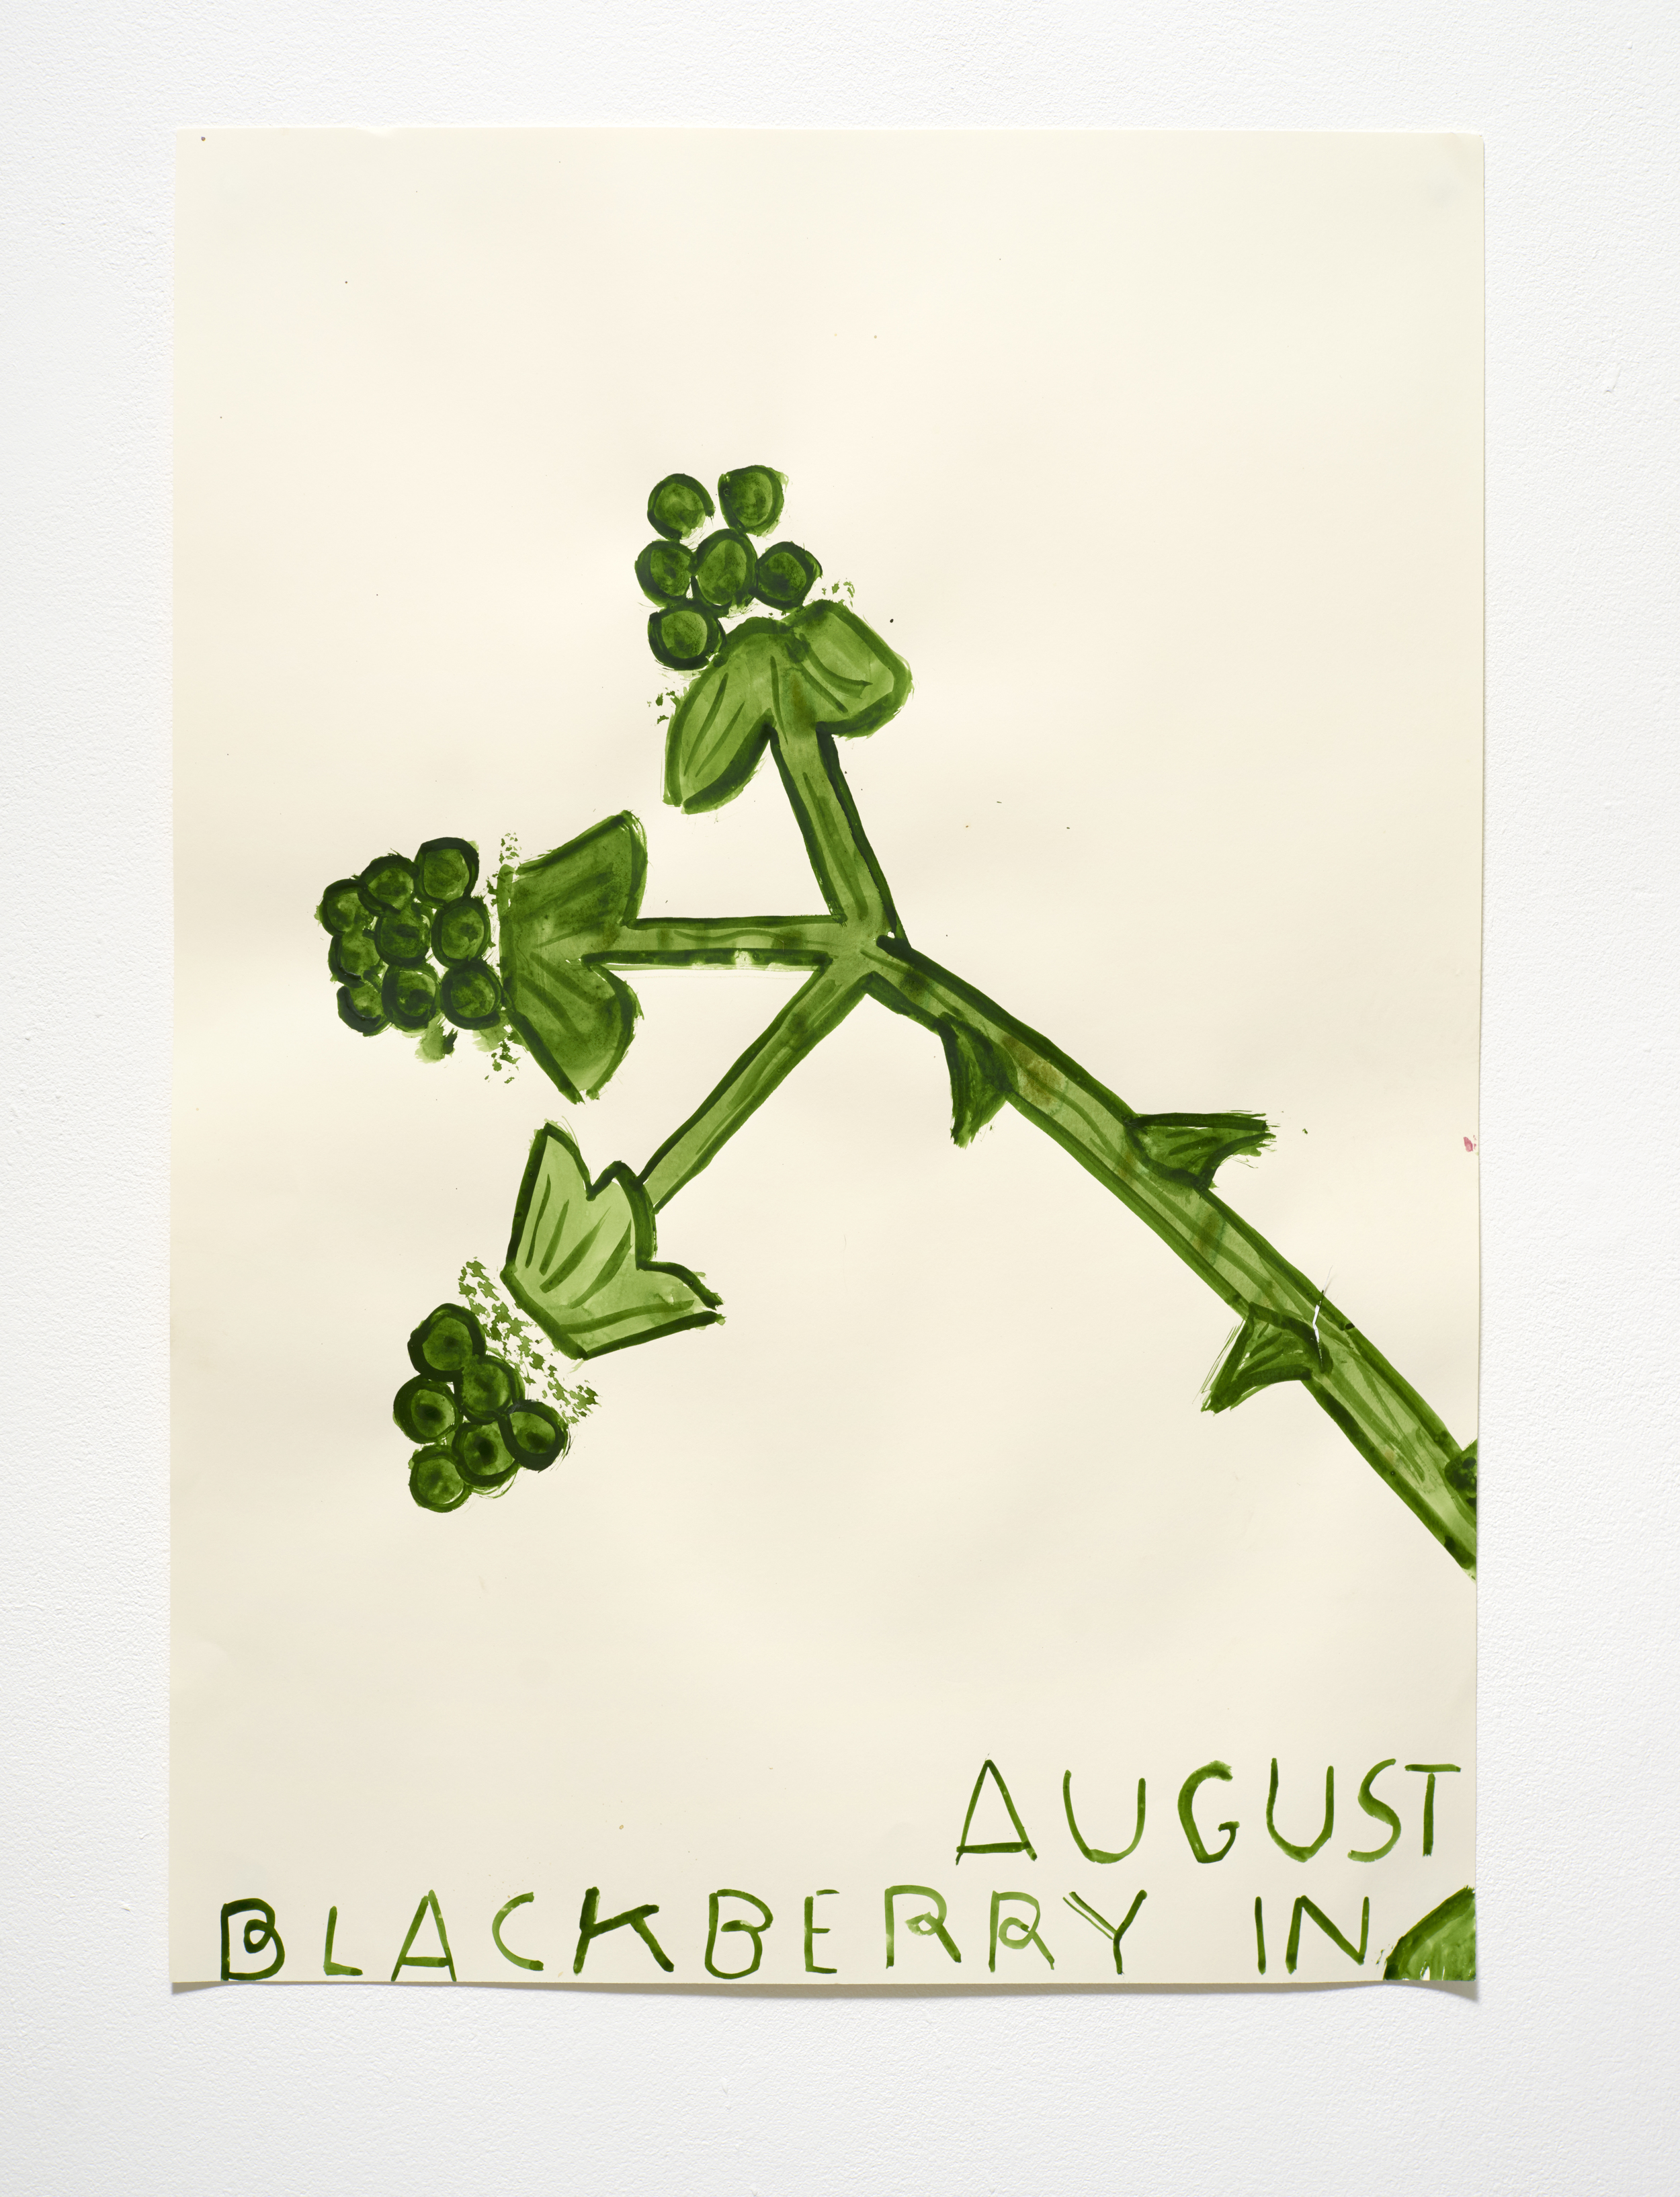 八月的黑莓 Blackberry in August (2015)